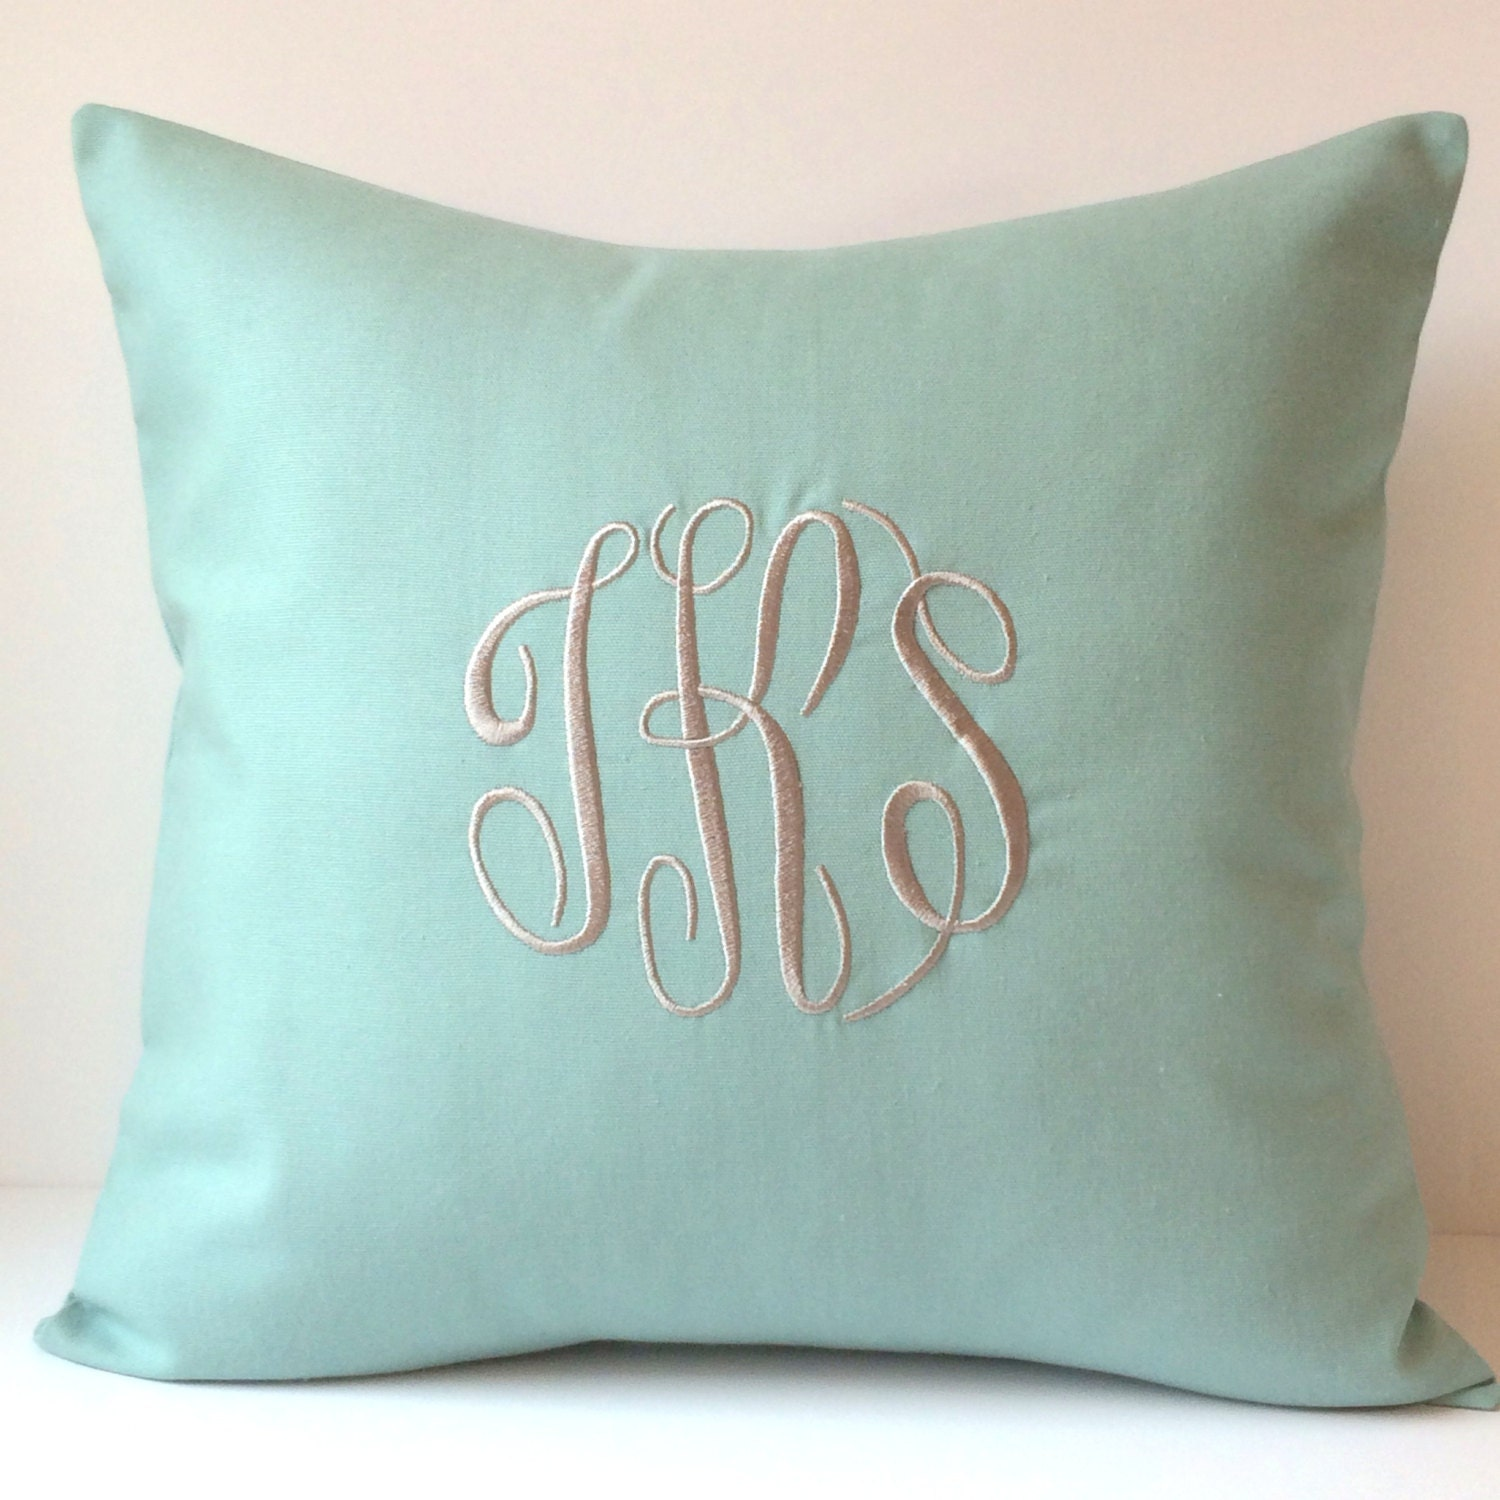 Decorative Pillows With Monogram : Monogrammed Pillows. 18 x 18 Throw Pillow Cover. Personalized